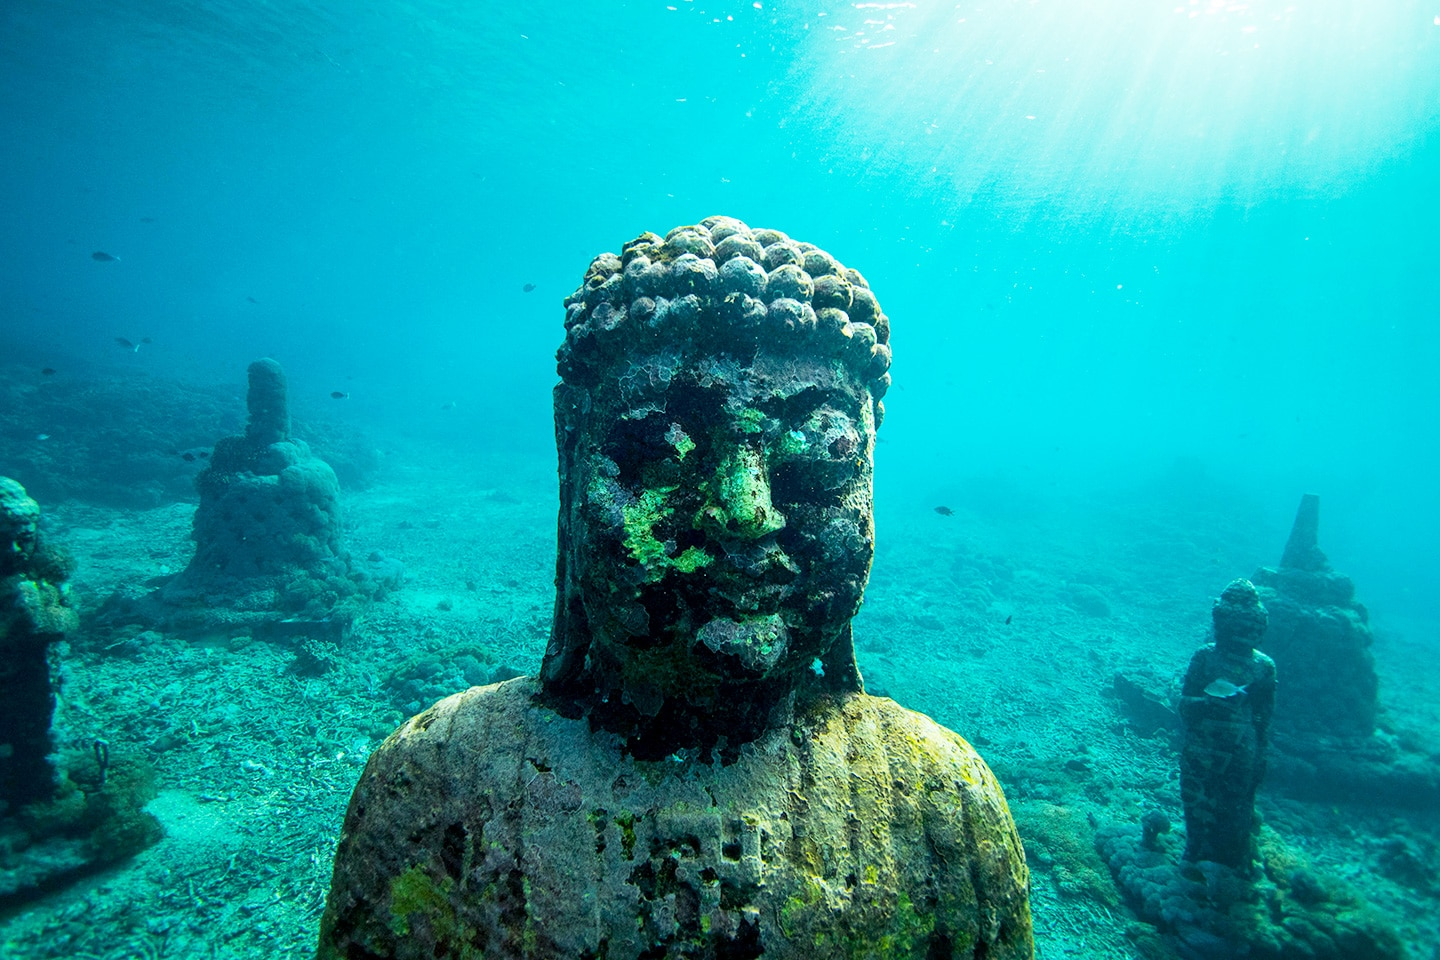 underwater buddha statue in Indonesia